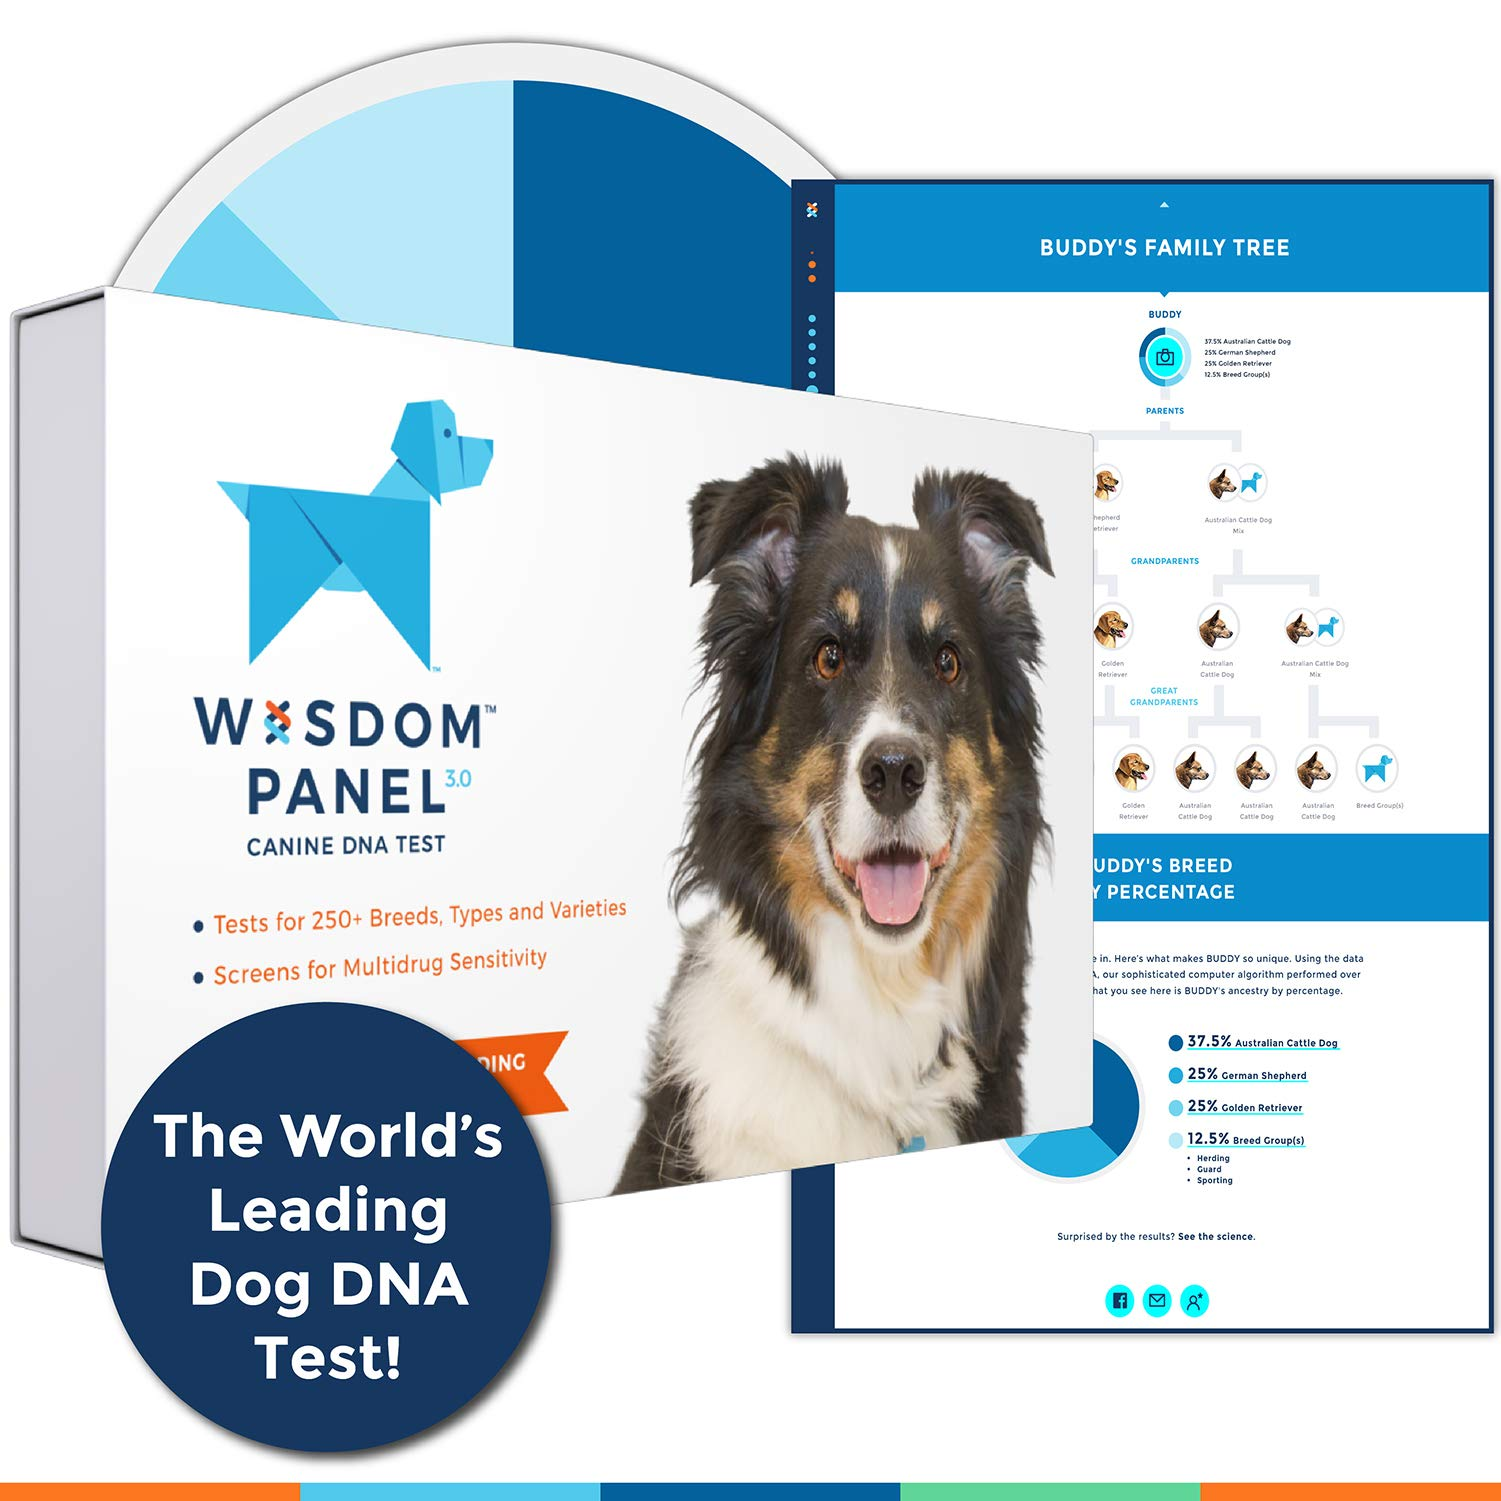 Wisdom Panel 3.0 Canine DNA Test - Dog DNA Test Kit for Breed and Ancestry Information by Wisdom Health